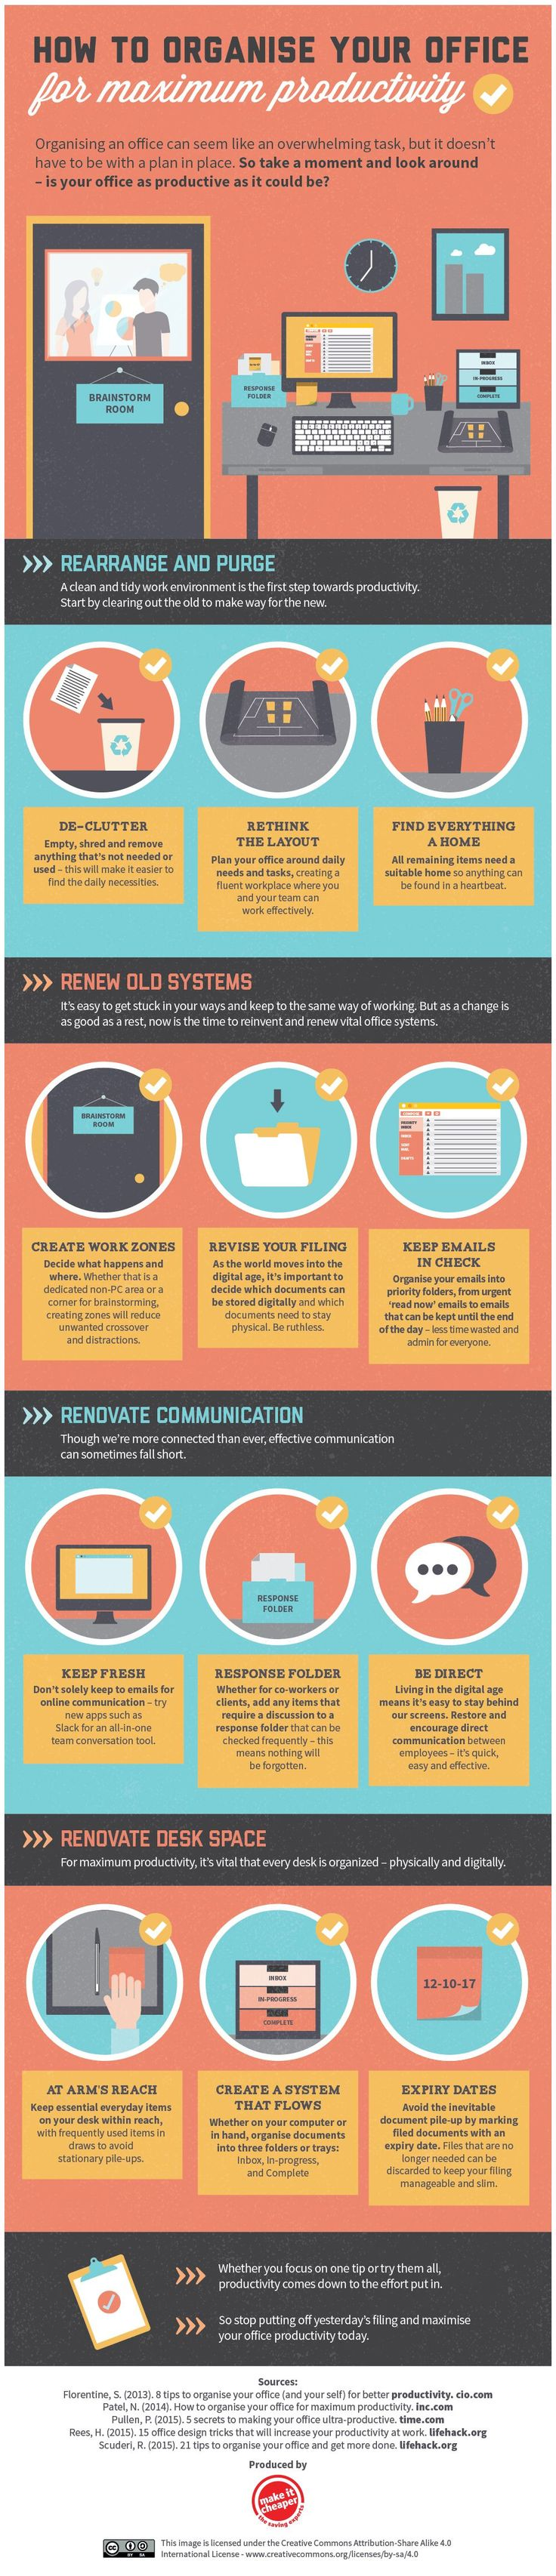 best ideas about work office organization work how to organise your office for maximum productivity infographic